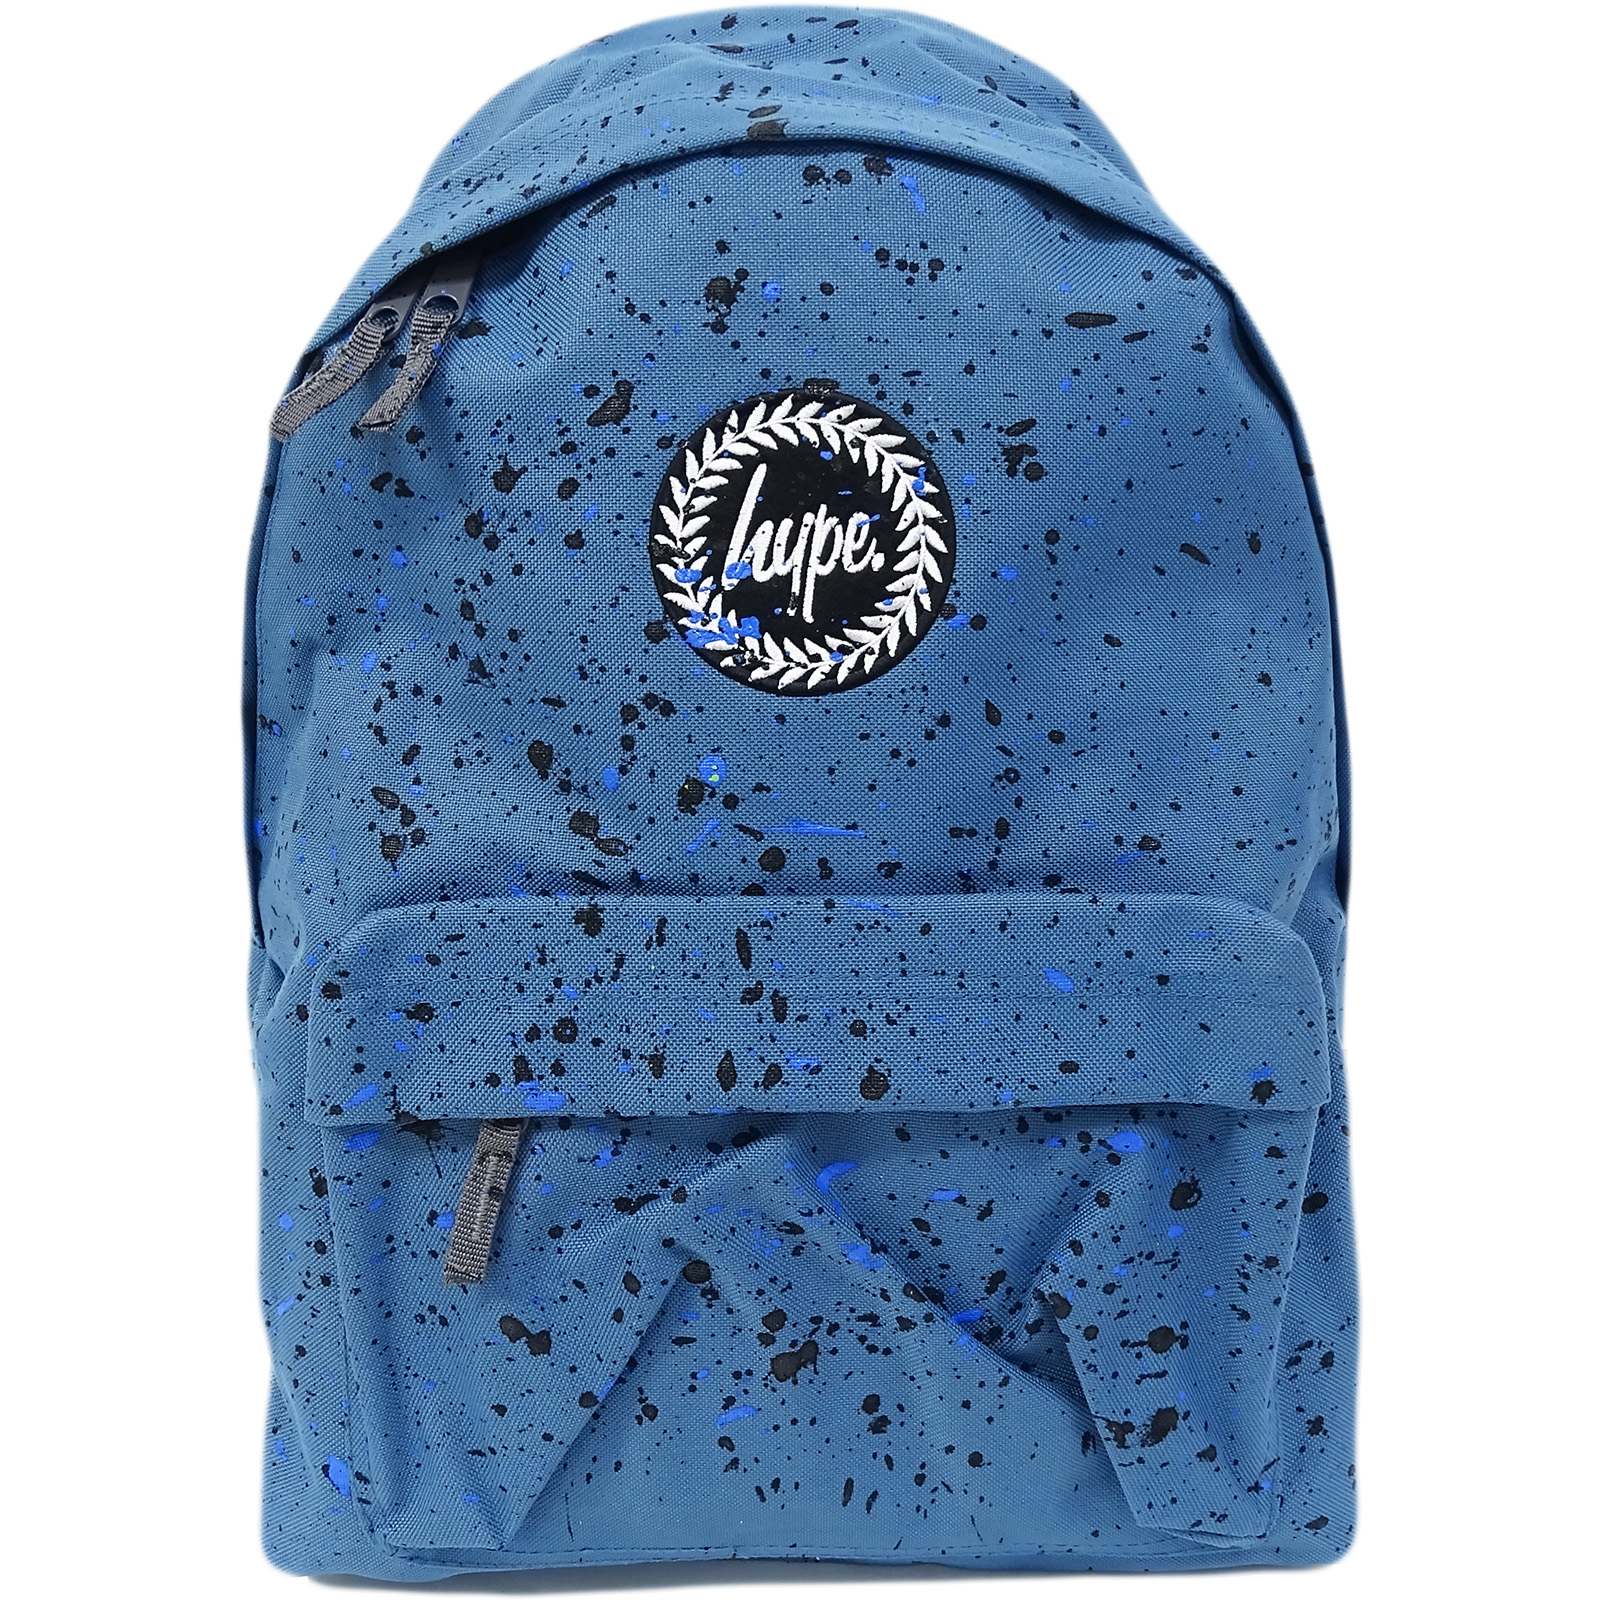 Hype Backpack Bag - Splatter Airforce Blue with Black and Navy